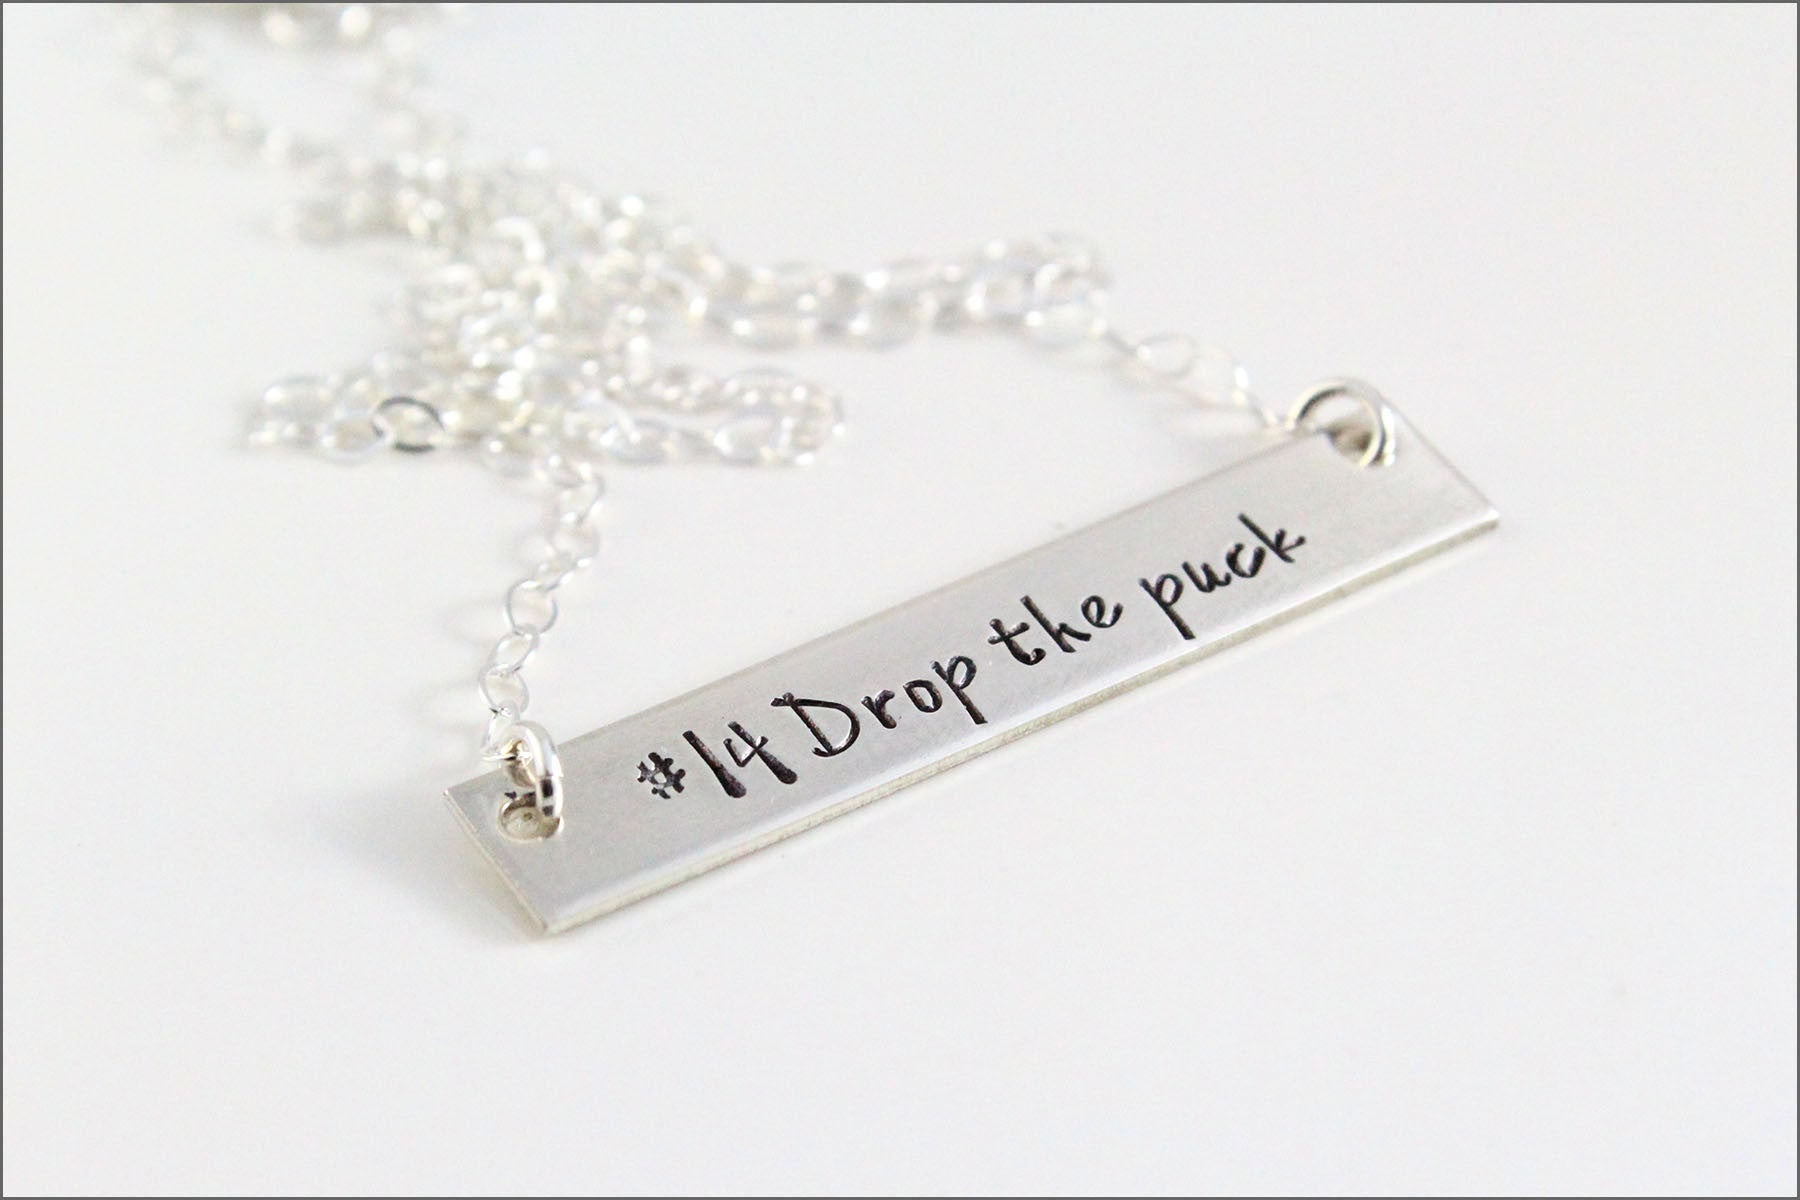 Hockey Player Bar Necklace | Sterling Silver Necklace, Silver Bar Necklace, Hockey Mom Necklace, Sports Mom Necklace, Drop the Puck